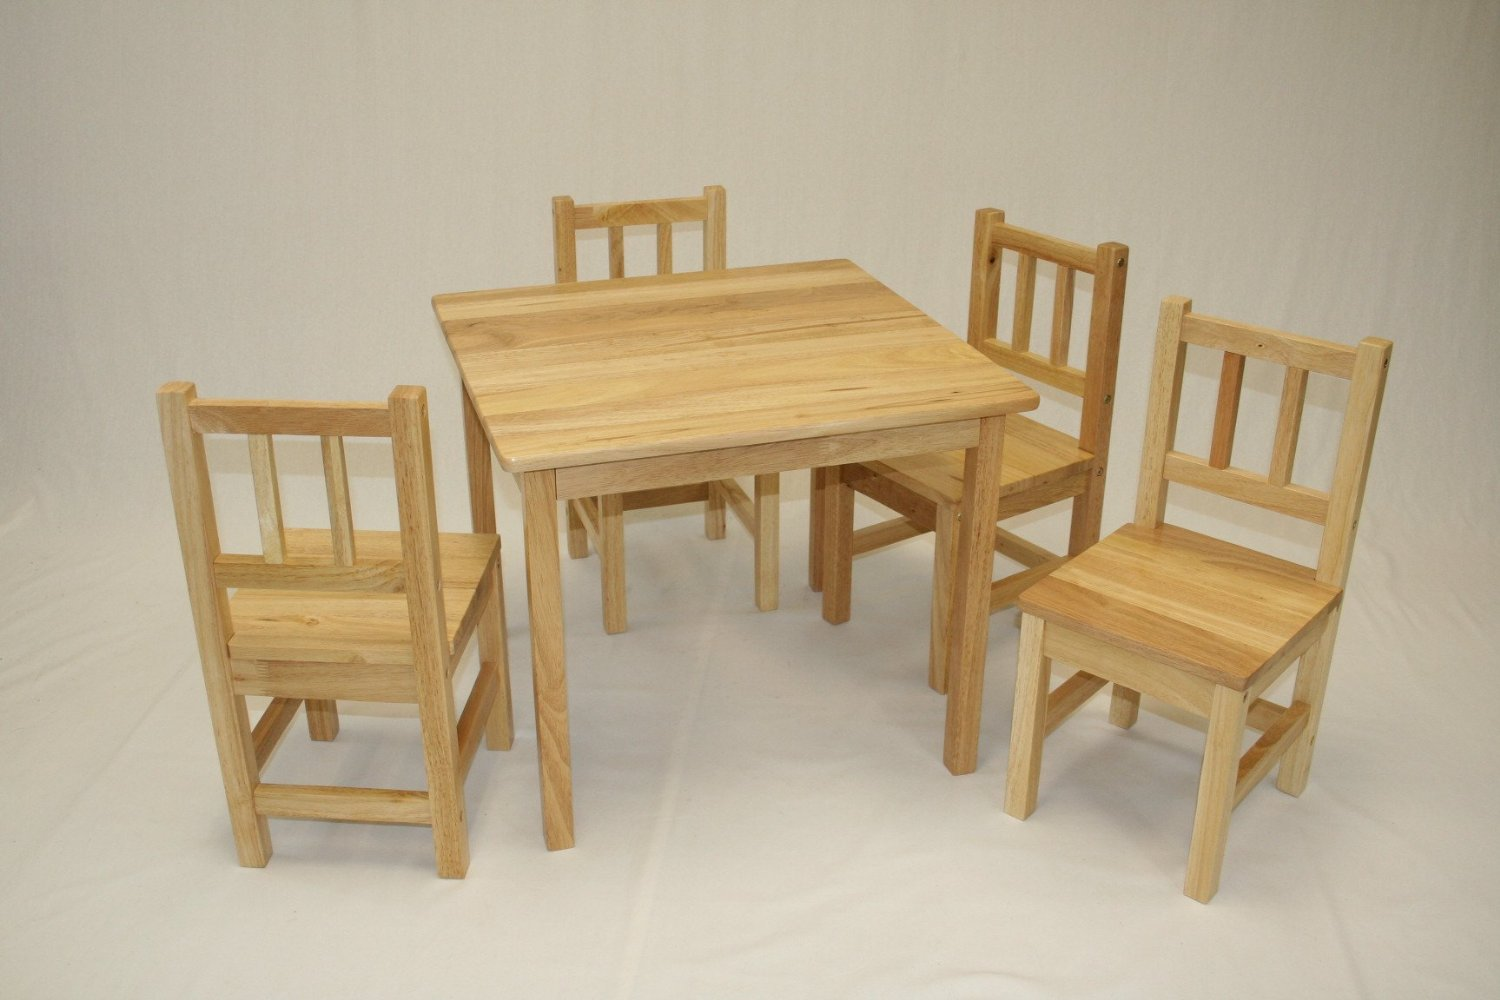 Childrens Table And Chair Set Ehemco 5 Piece Kids Table And Chairs Set Solid Hard Wood Unfinished